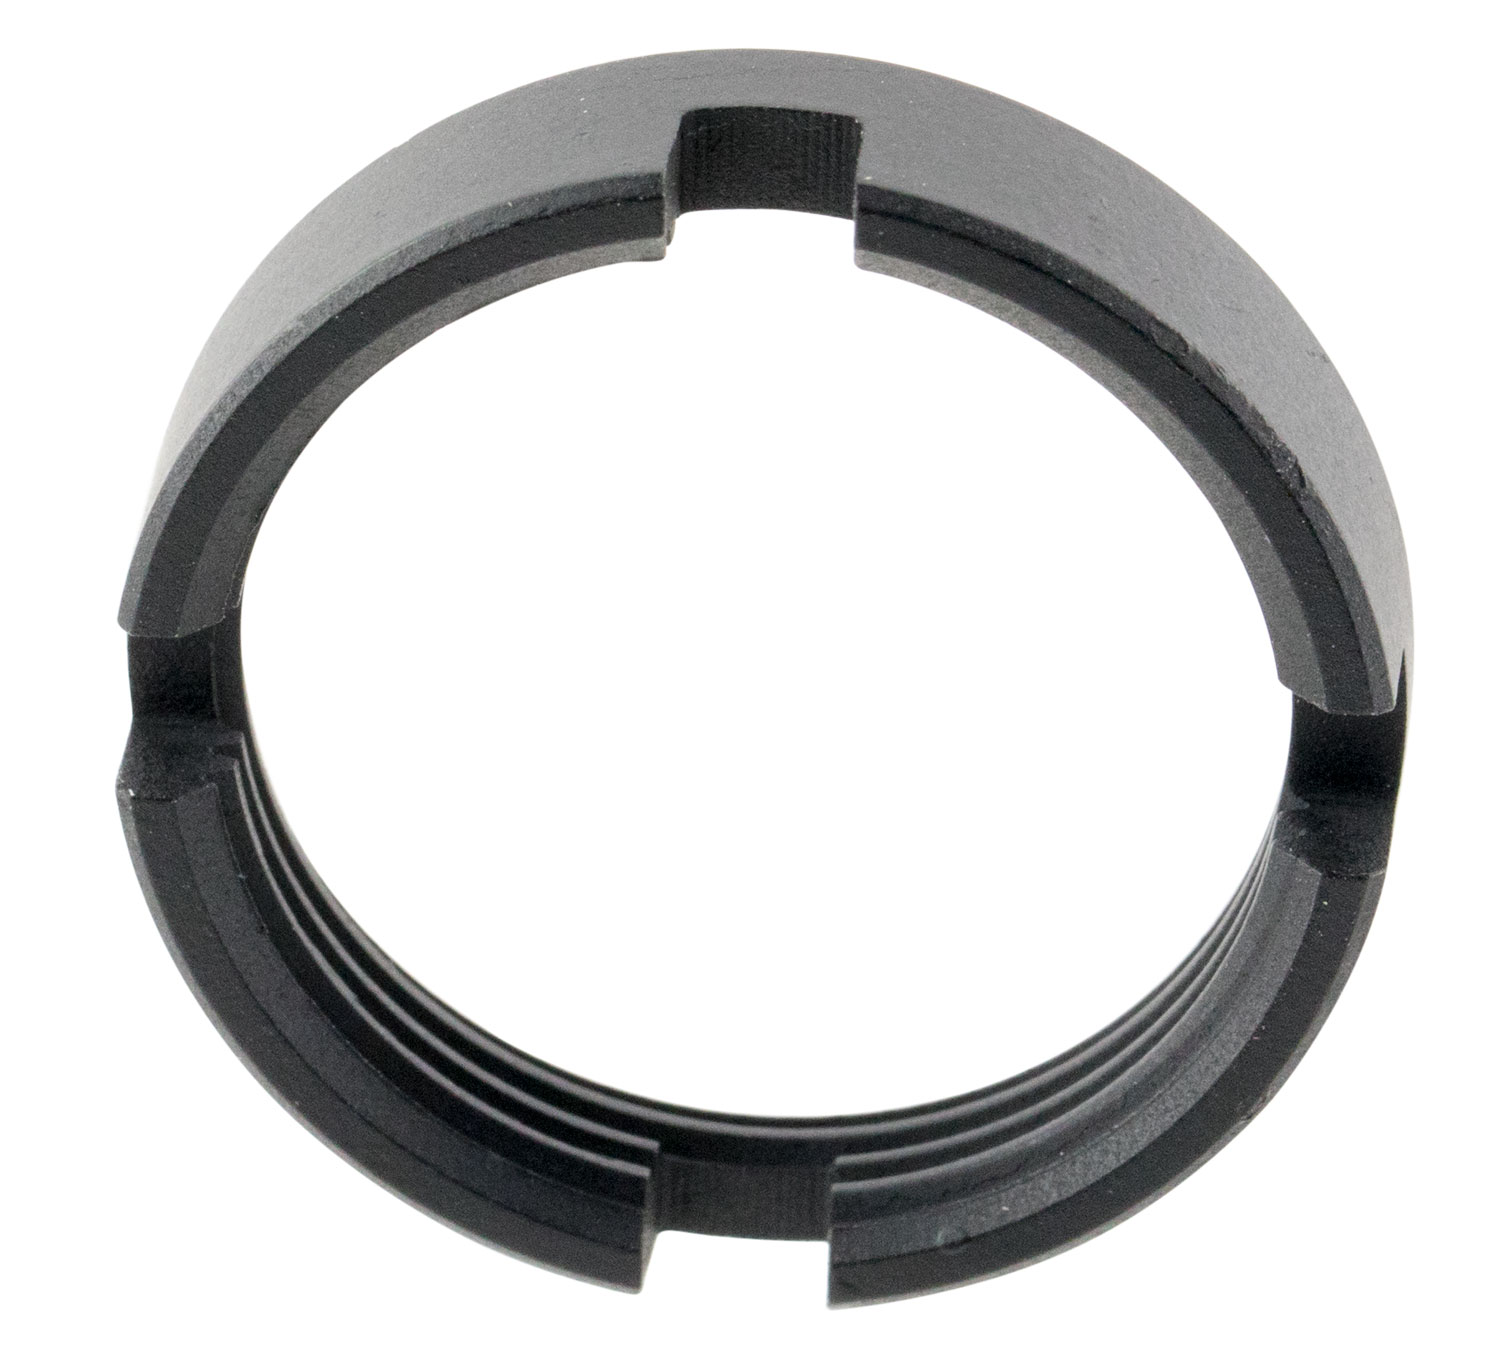 Advanced Technology A5101020 AR-15 Castle Nut Steel Black